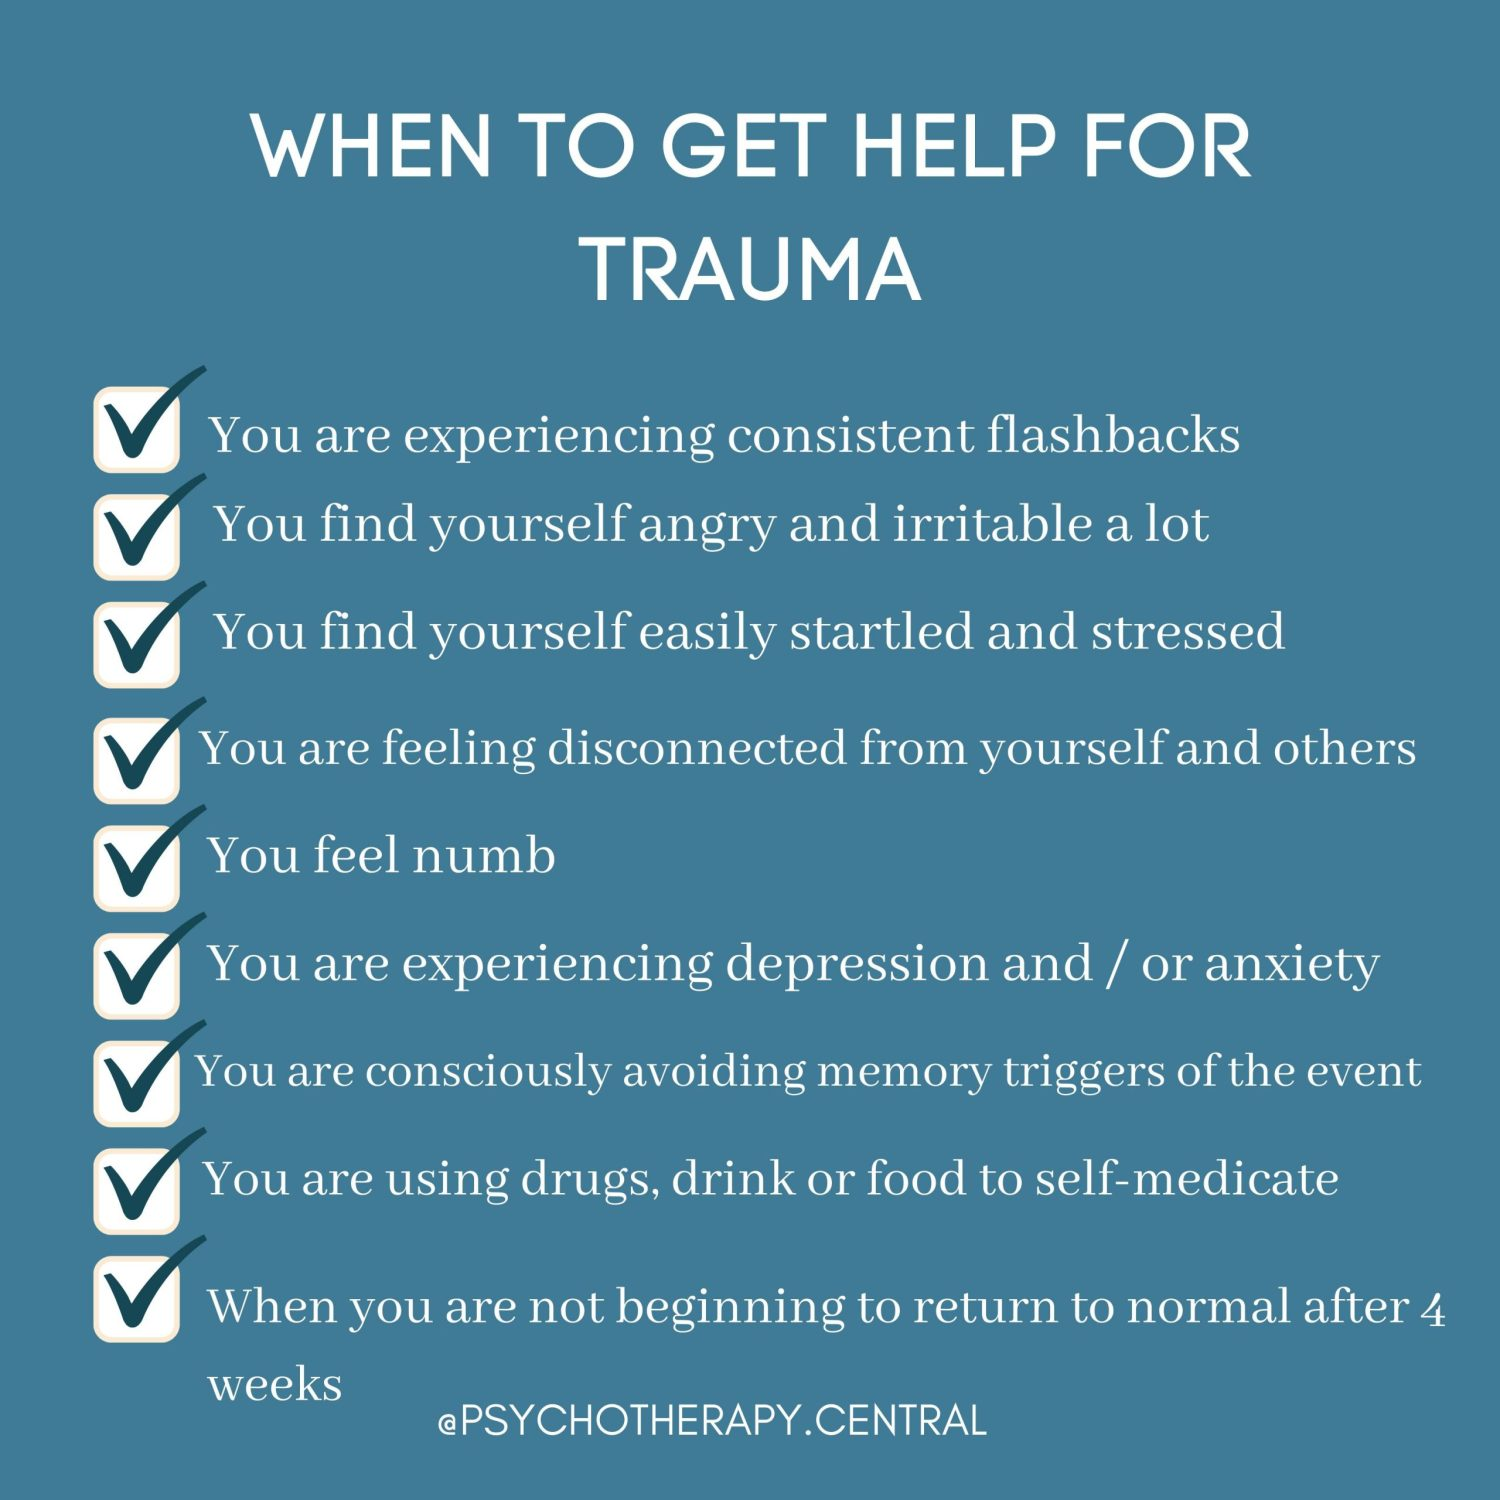 WHEN-TO-GET-HELP-FOR-TRAUMA